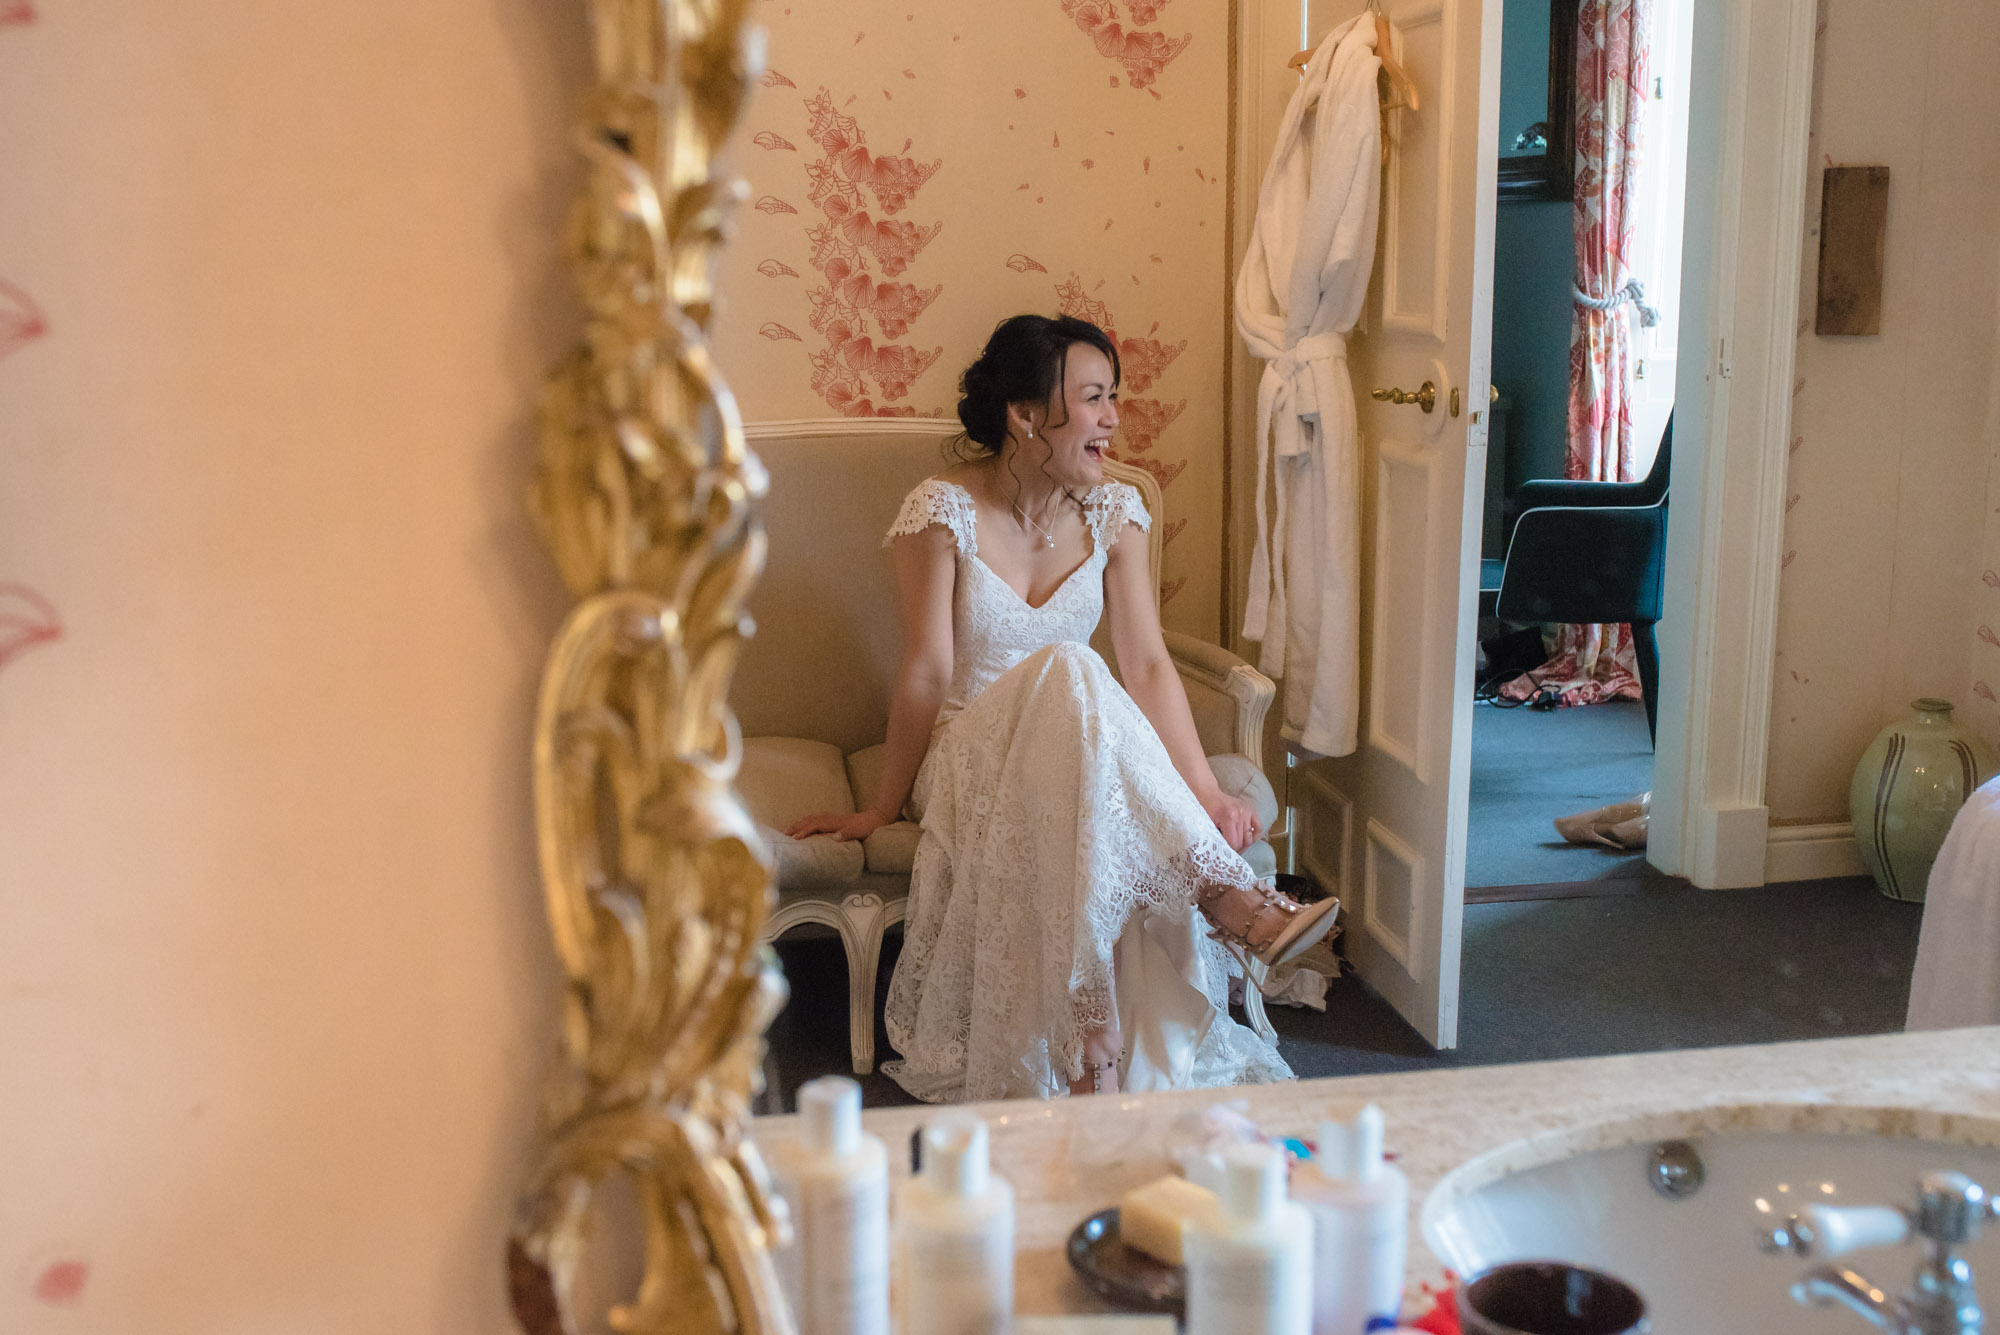 Bride sits on the sofa in the bathroom and waits to be called down to the wedding ceremony.